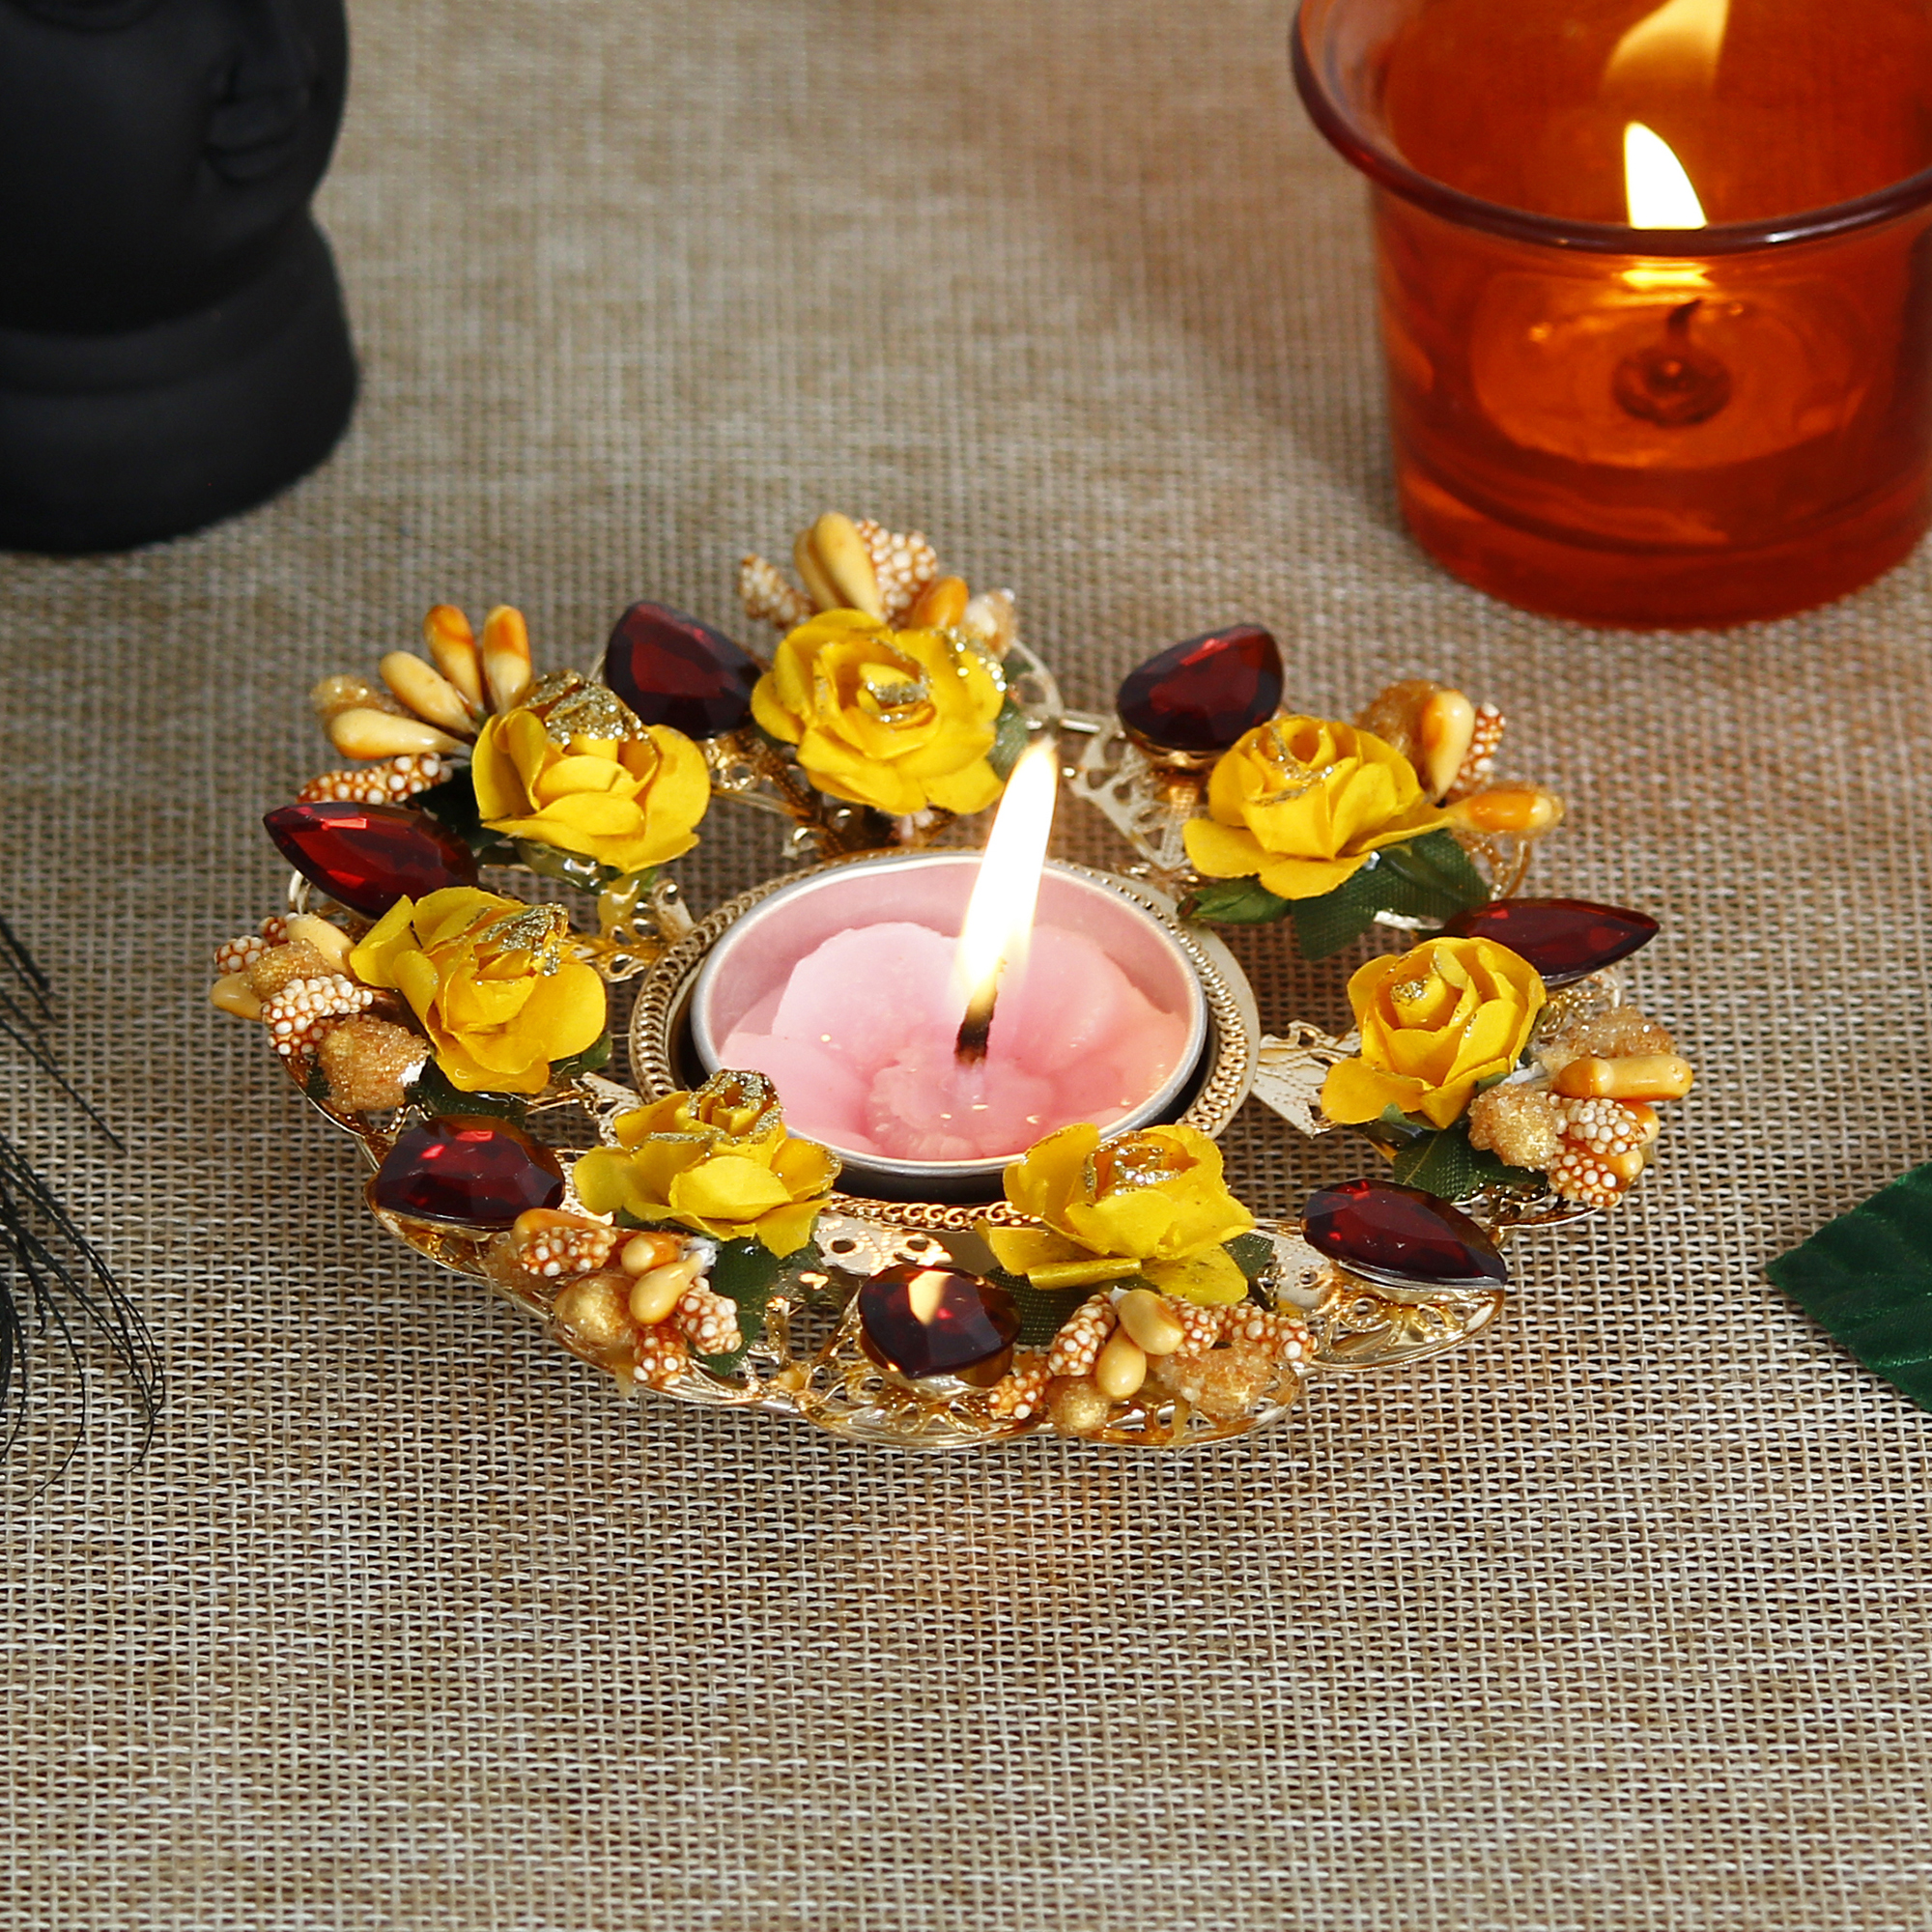 Decorative Handcrafted Yellow and Red Floral Tea Light Holder Indian Home Decor